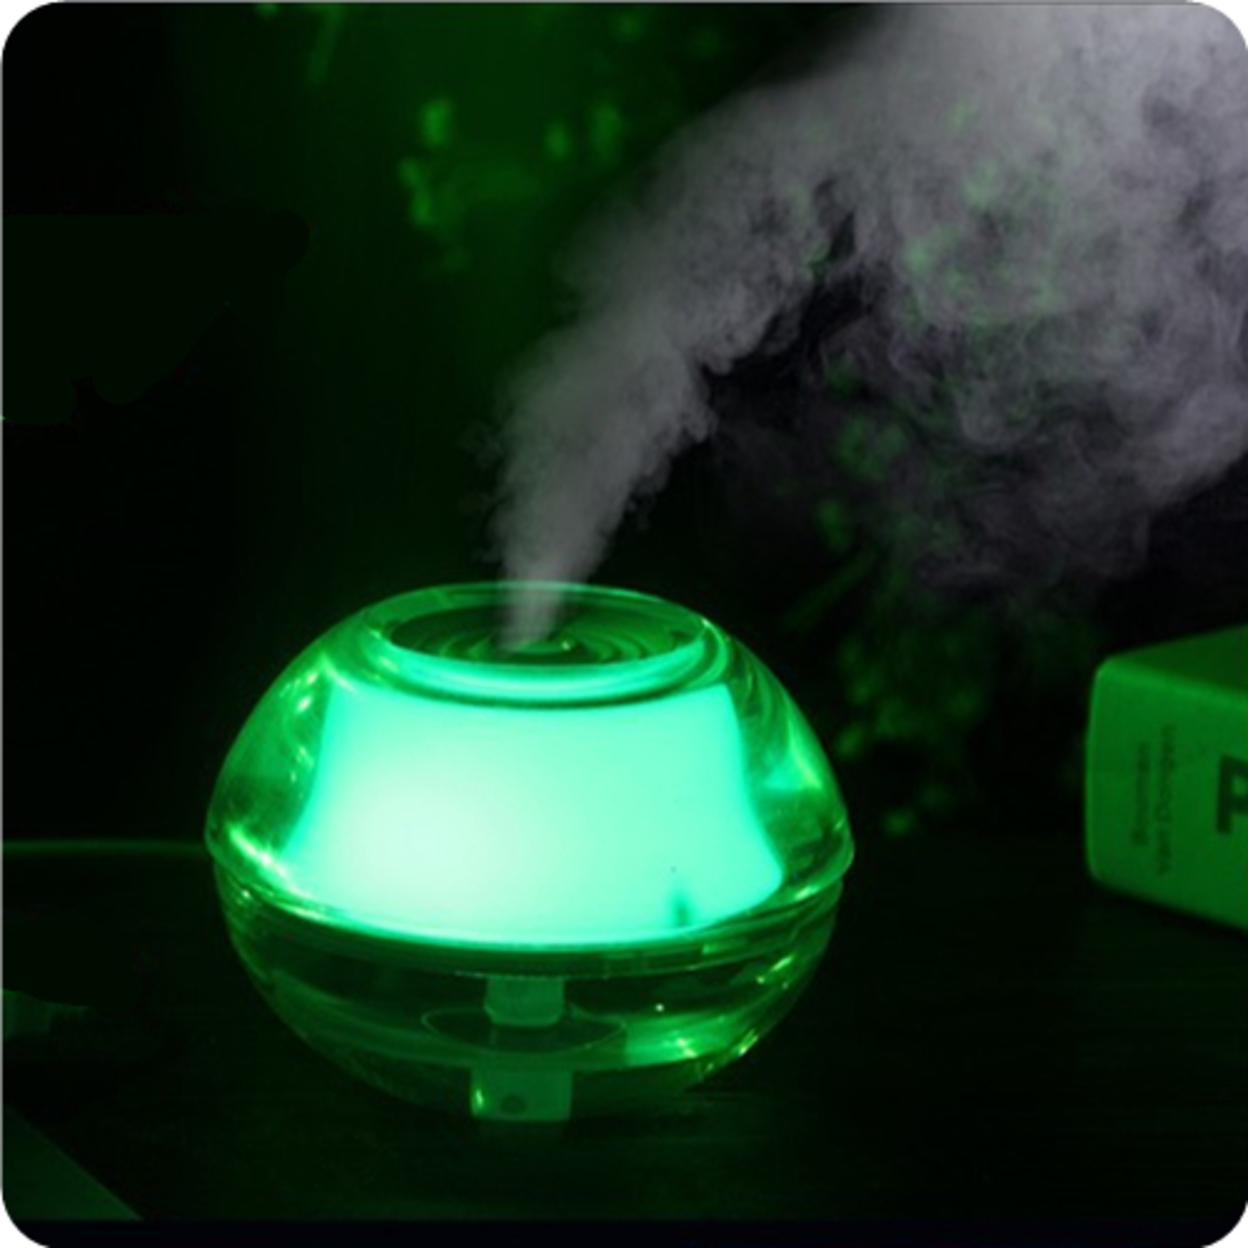 LED Air Humidifier 58e7ebc440f76c54832a3eda